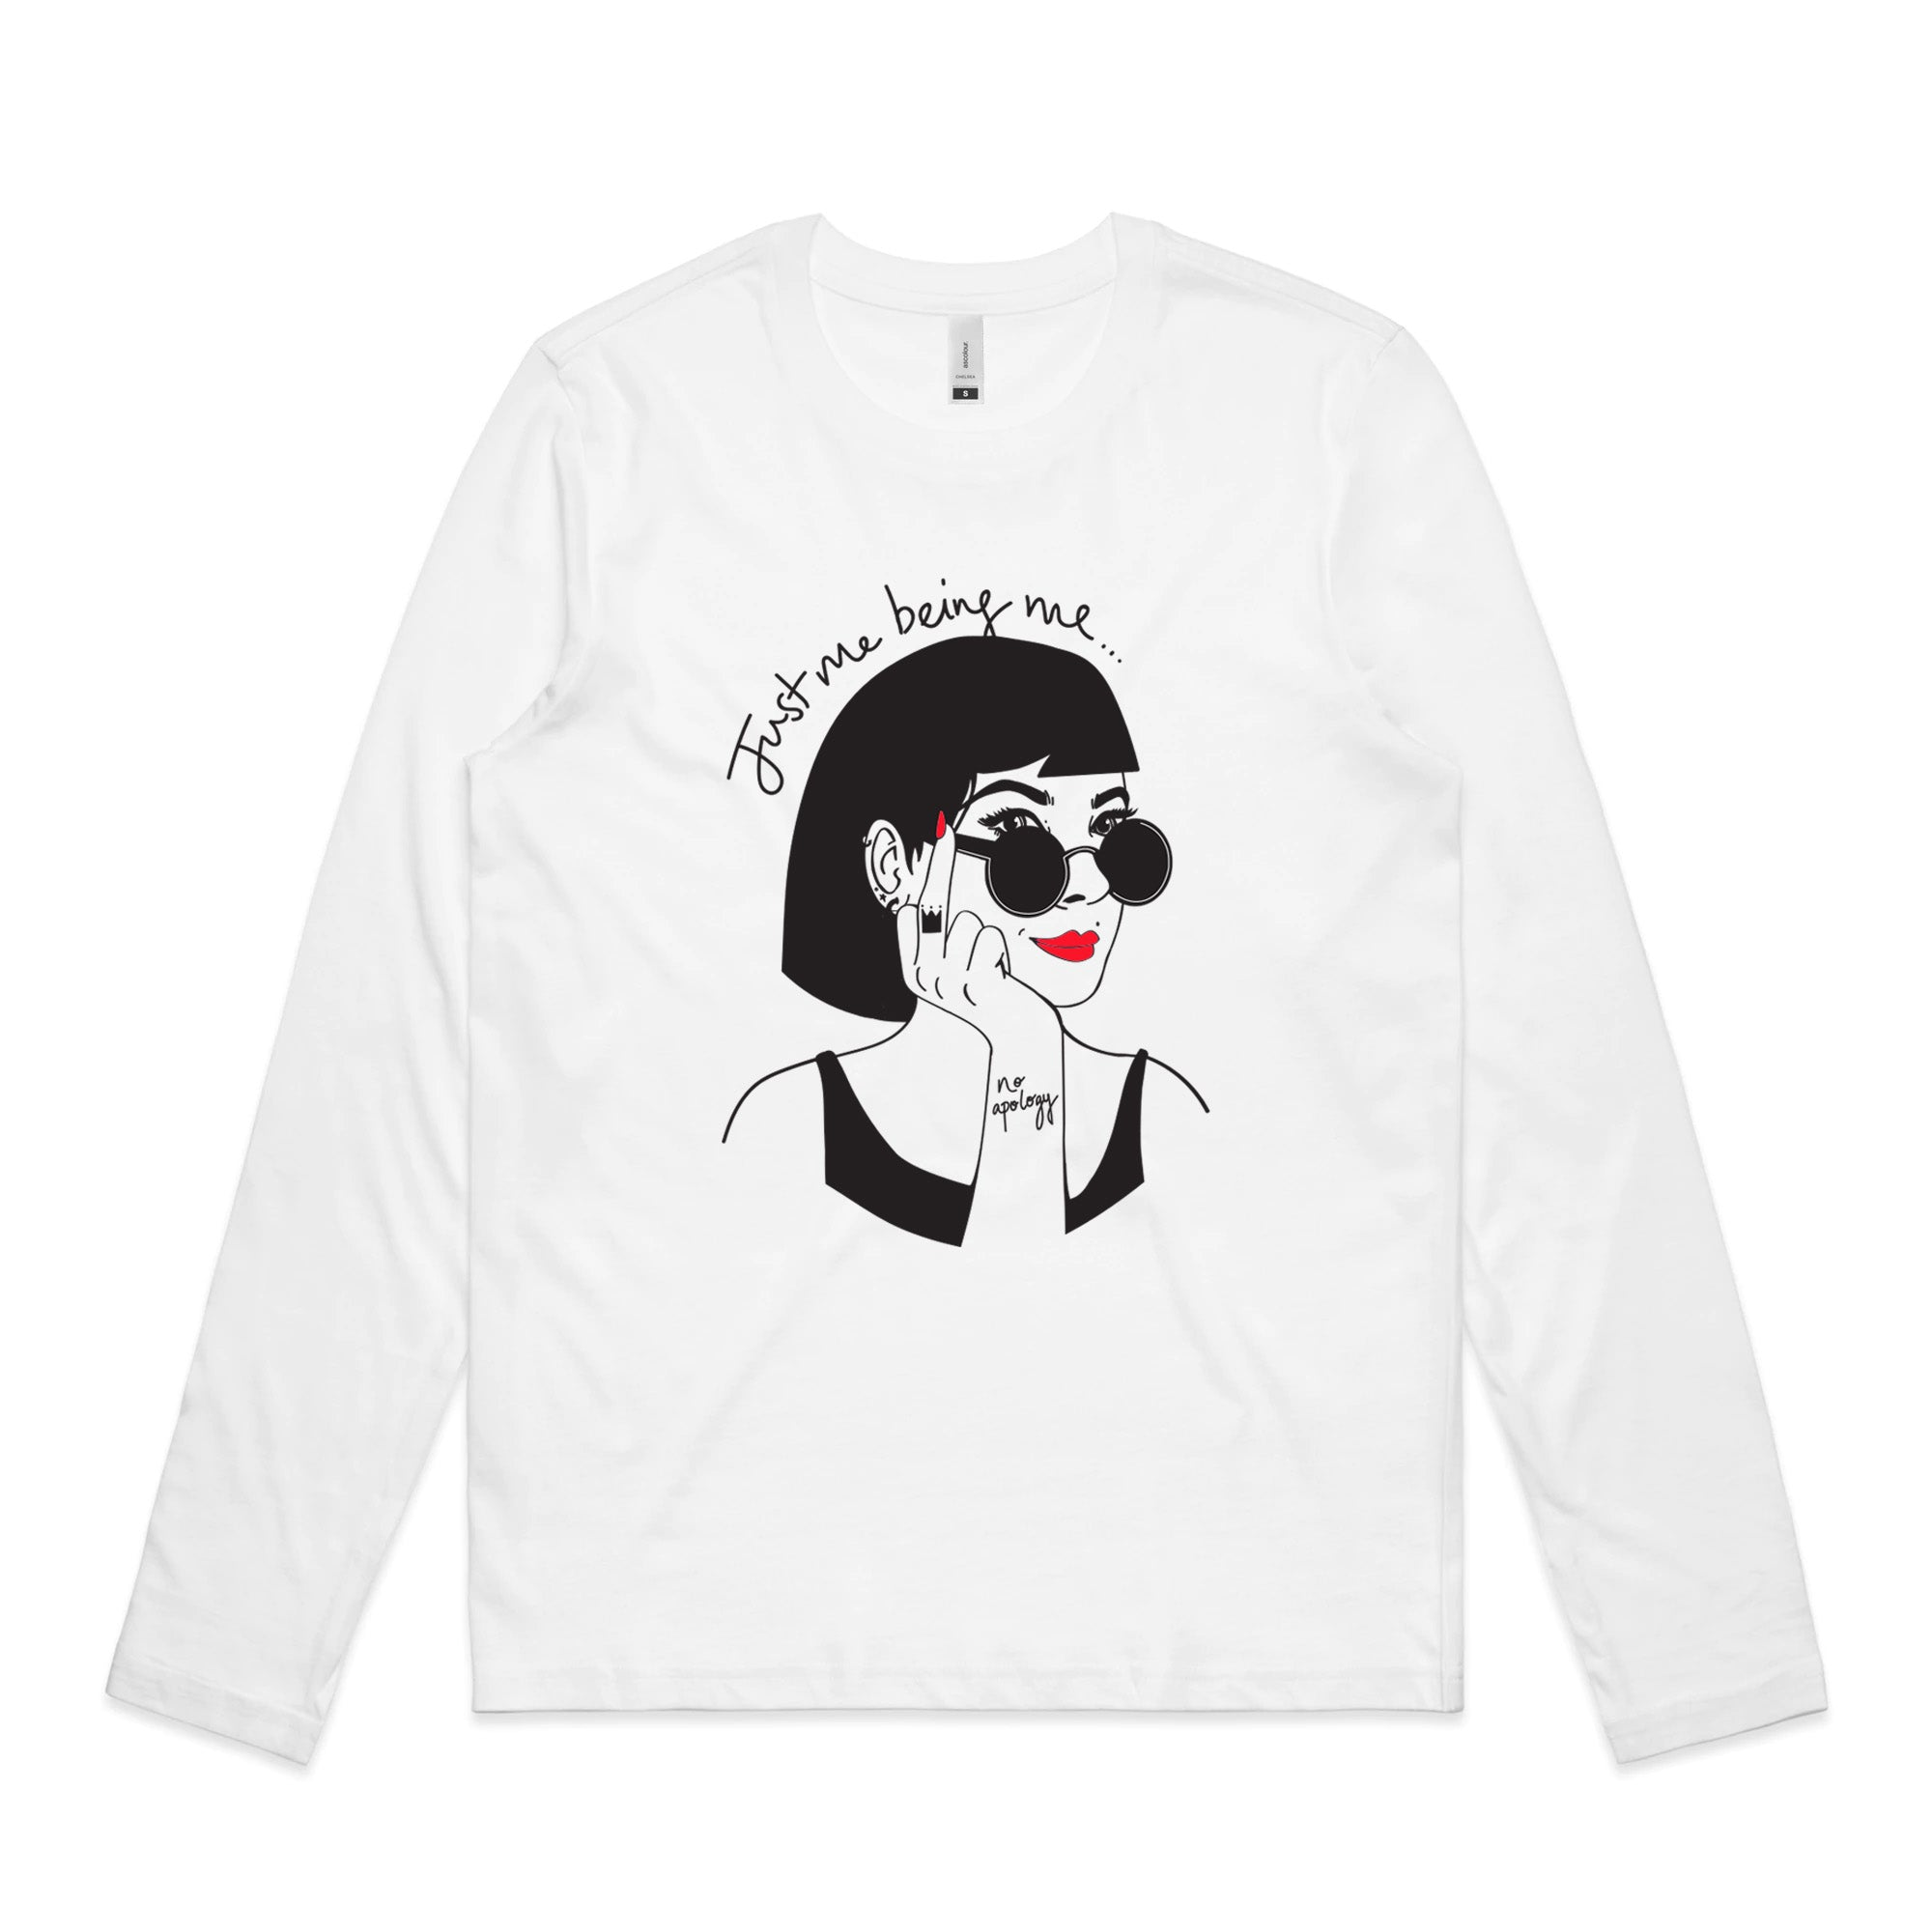 'Just Me Being Me' Women's Long-Sleeve Tee